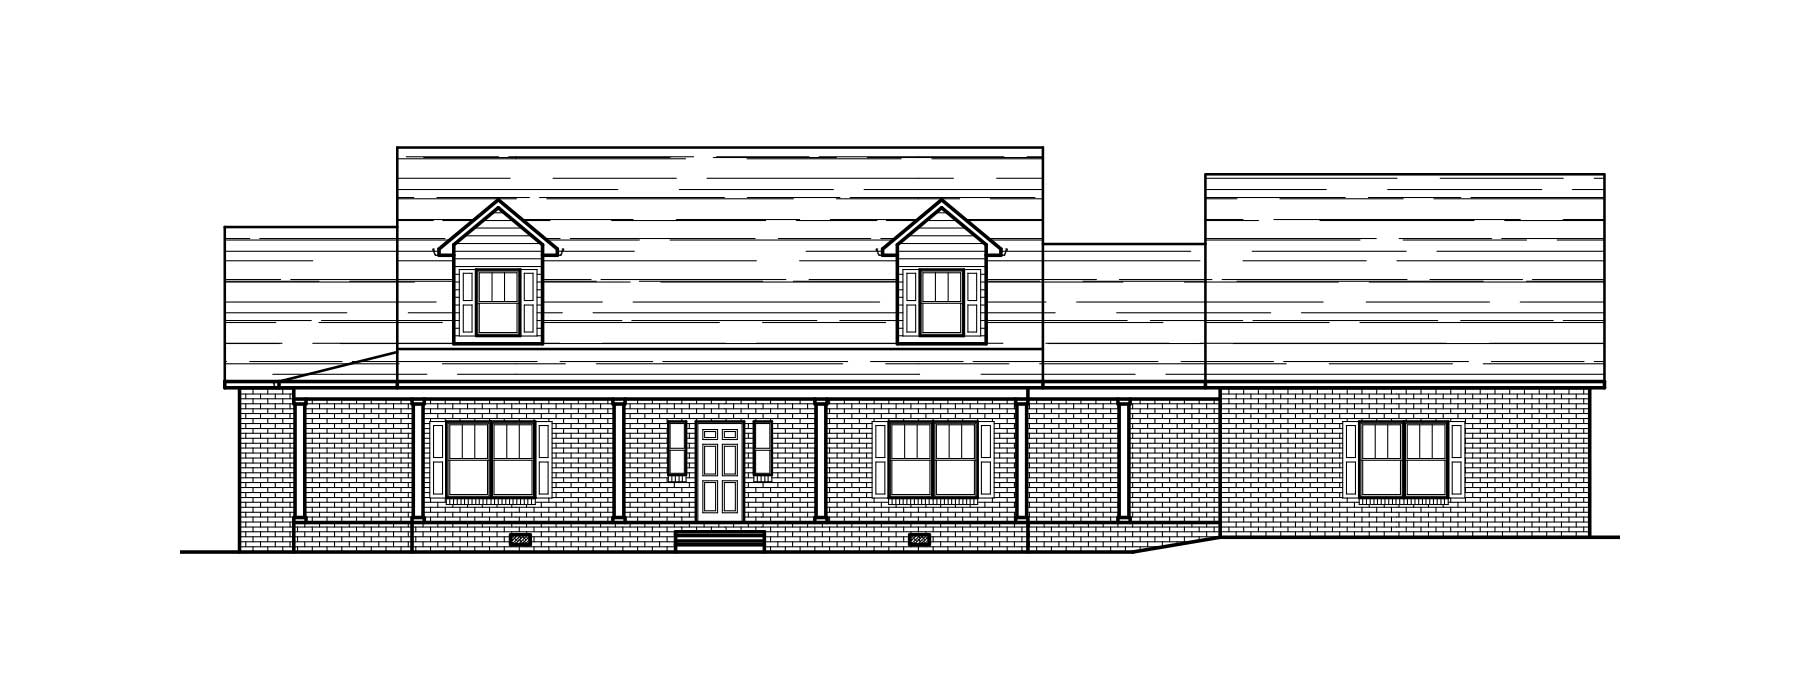 Elevation drawing of current custom home project